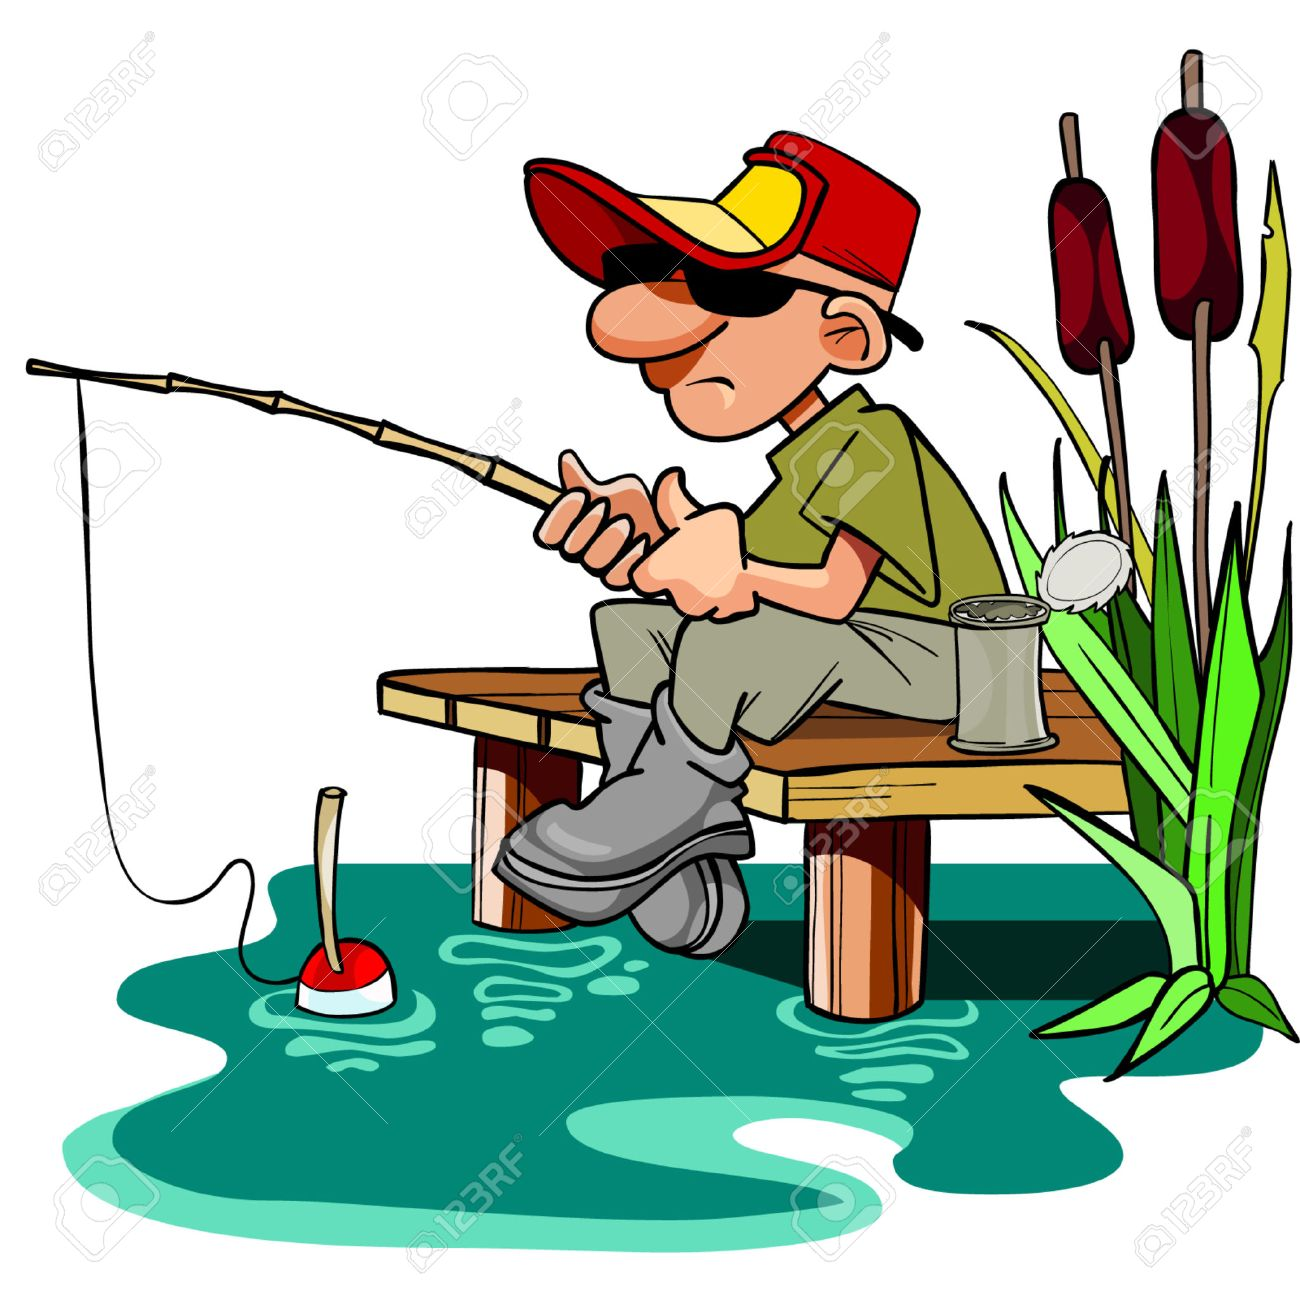 hight resolution of cartoon fisherman with a fishing pole sitting on the dais